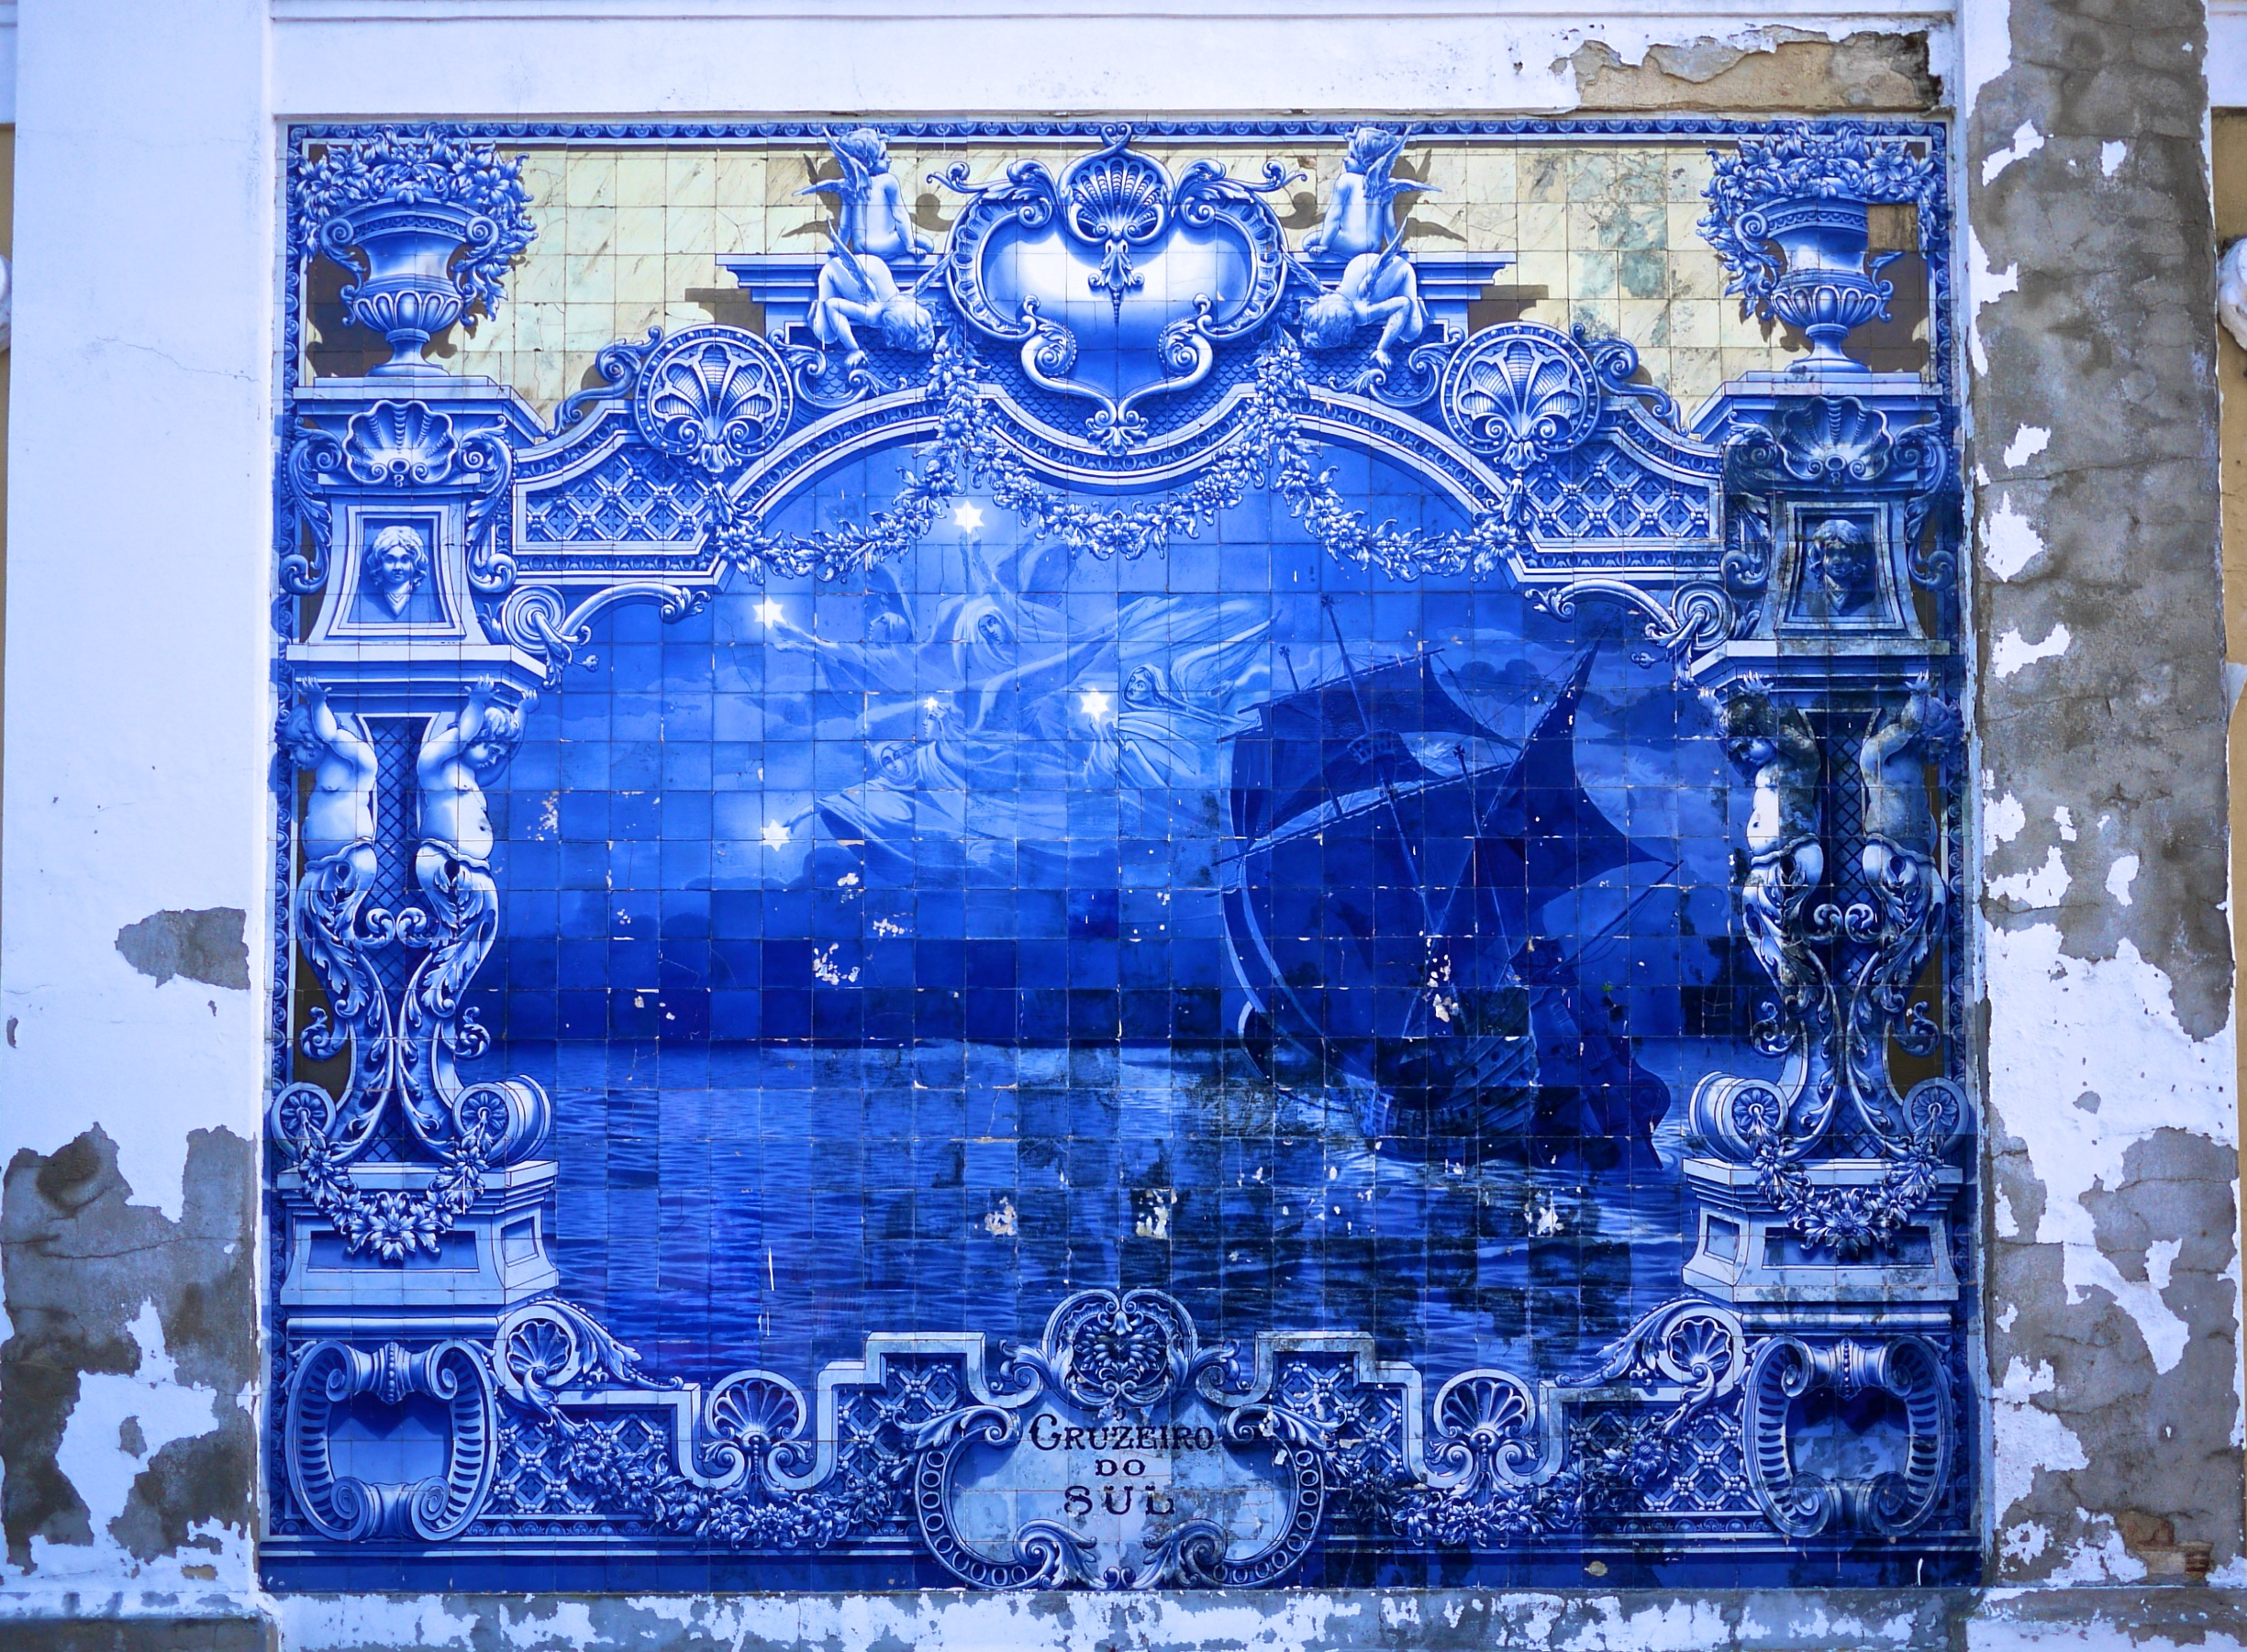 Azulejos un bleu qui ne dit pas son nom blog trotteurs for In fine architectes